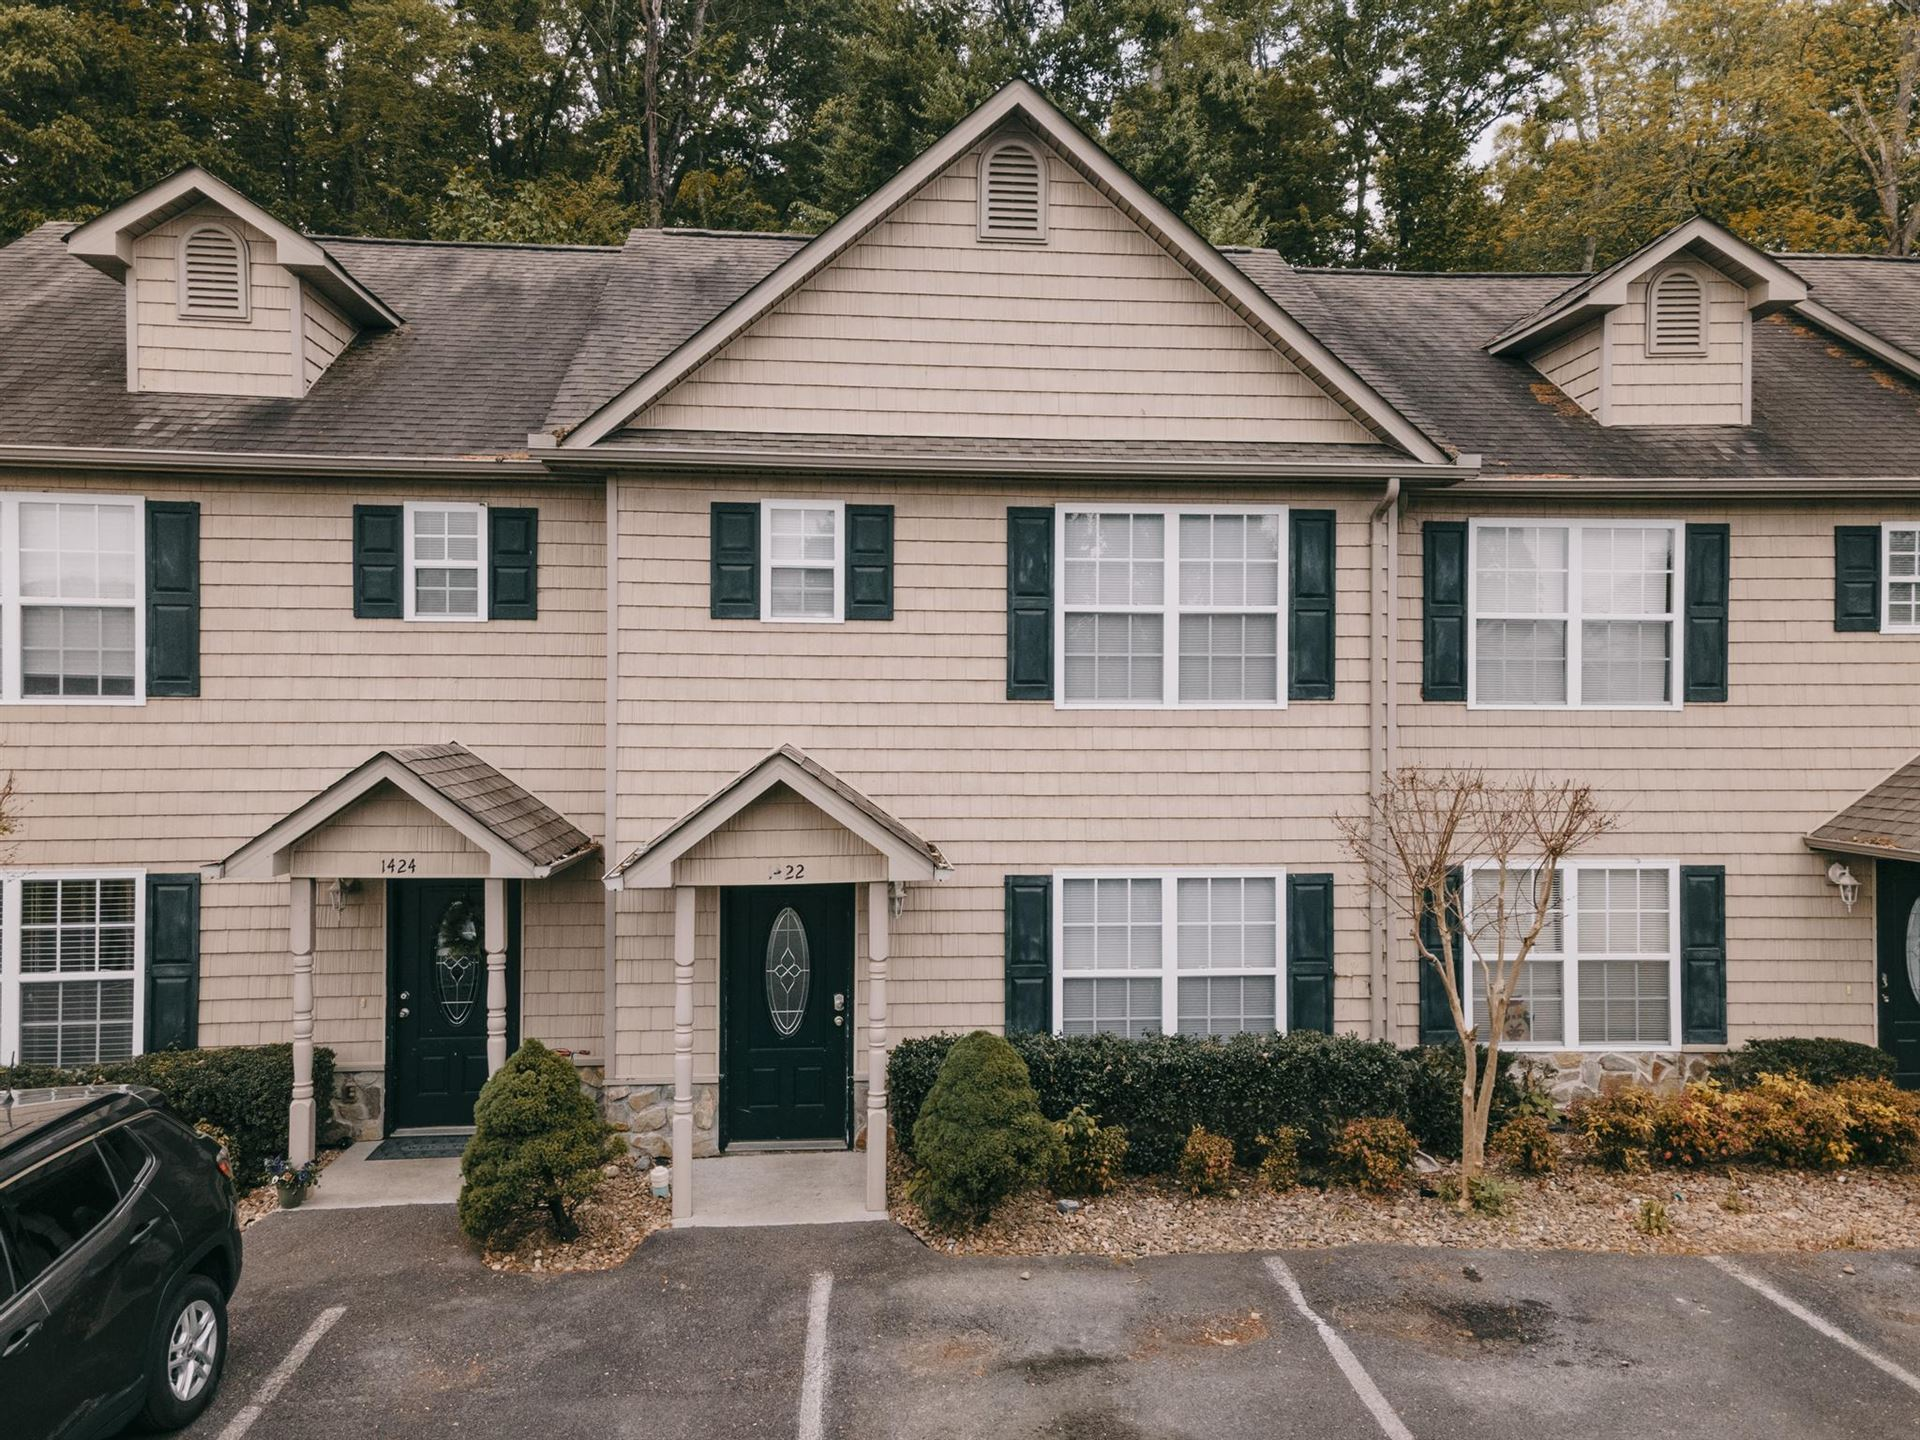 Photo of 1432 William Holt Boulevard, Sevierville, TN 37862 (MLS # 9921927)